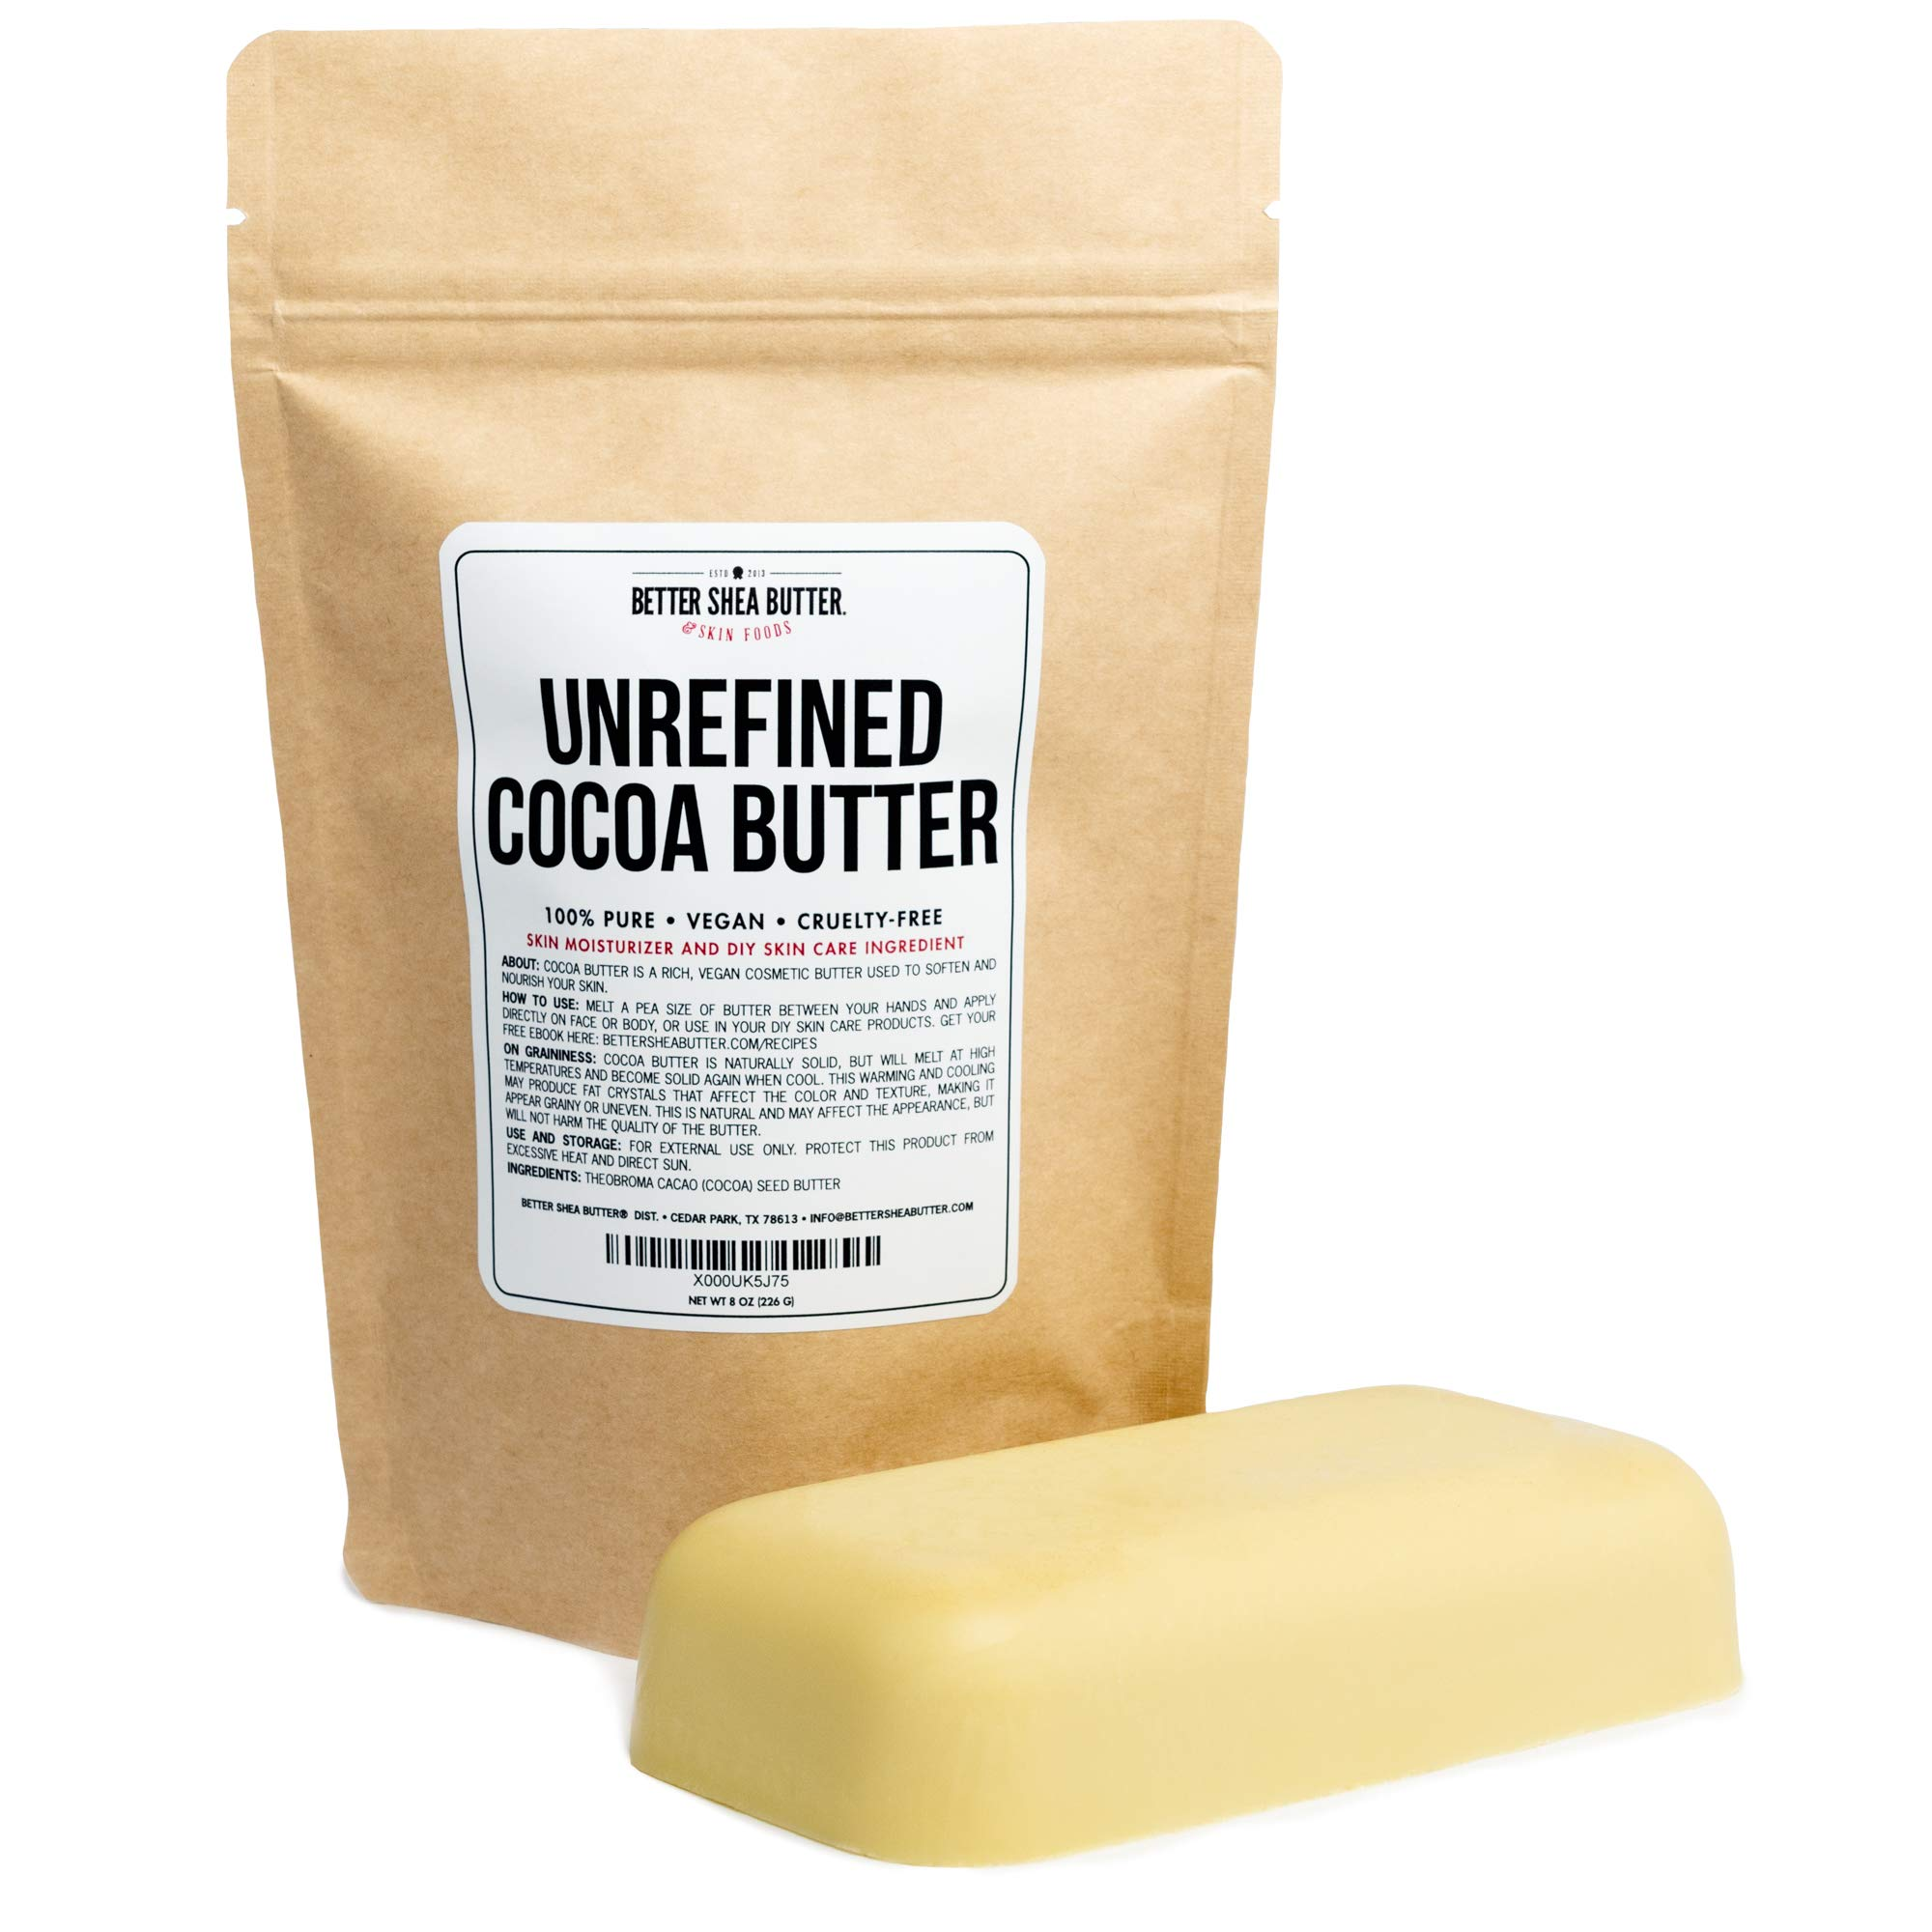 Unrefined Cocoa Butter - Use on Pregnancy Stretch Marks, Make Moisturizing Lotion, Chap Stick, Lip Balm and Body Butter - 100% Pure, Food Grade, Smells Like Chocolate - 8 oz by Better Shea Butter by Better Shea Butter